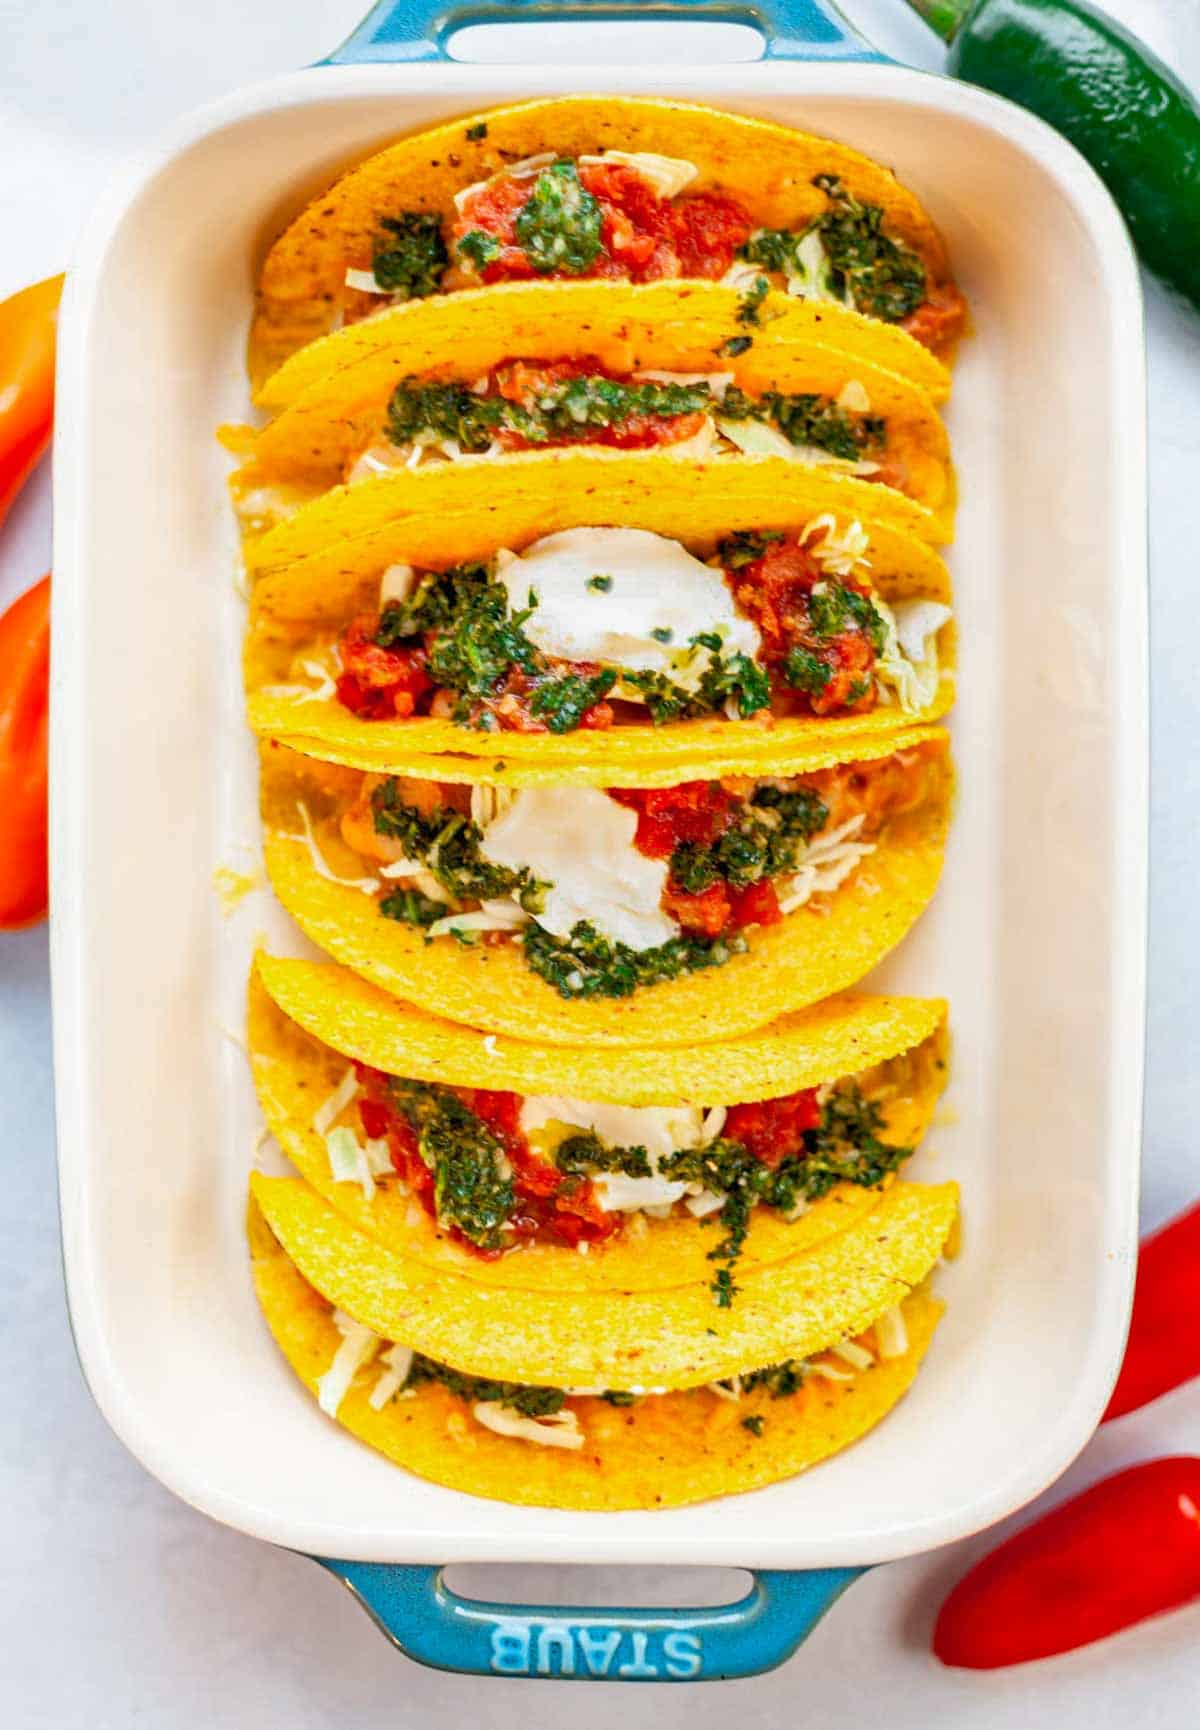 hard taco shells in a pan filled with refried beans, melted cheese, salsa and cilantro